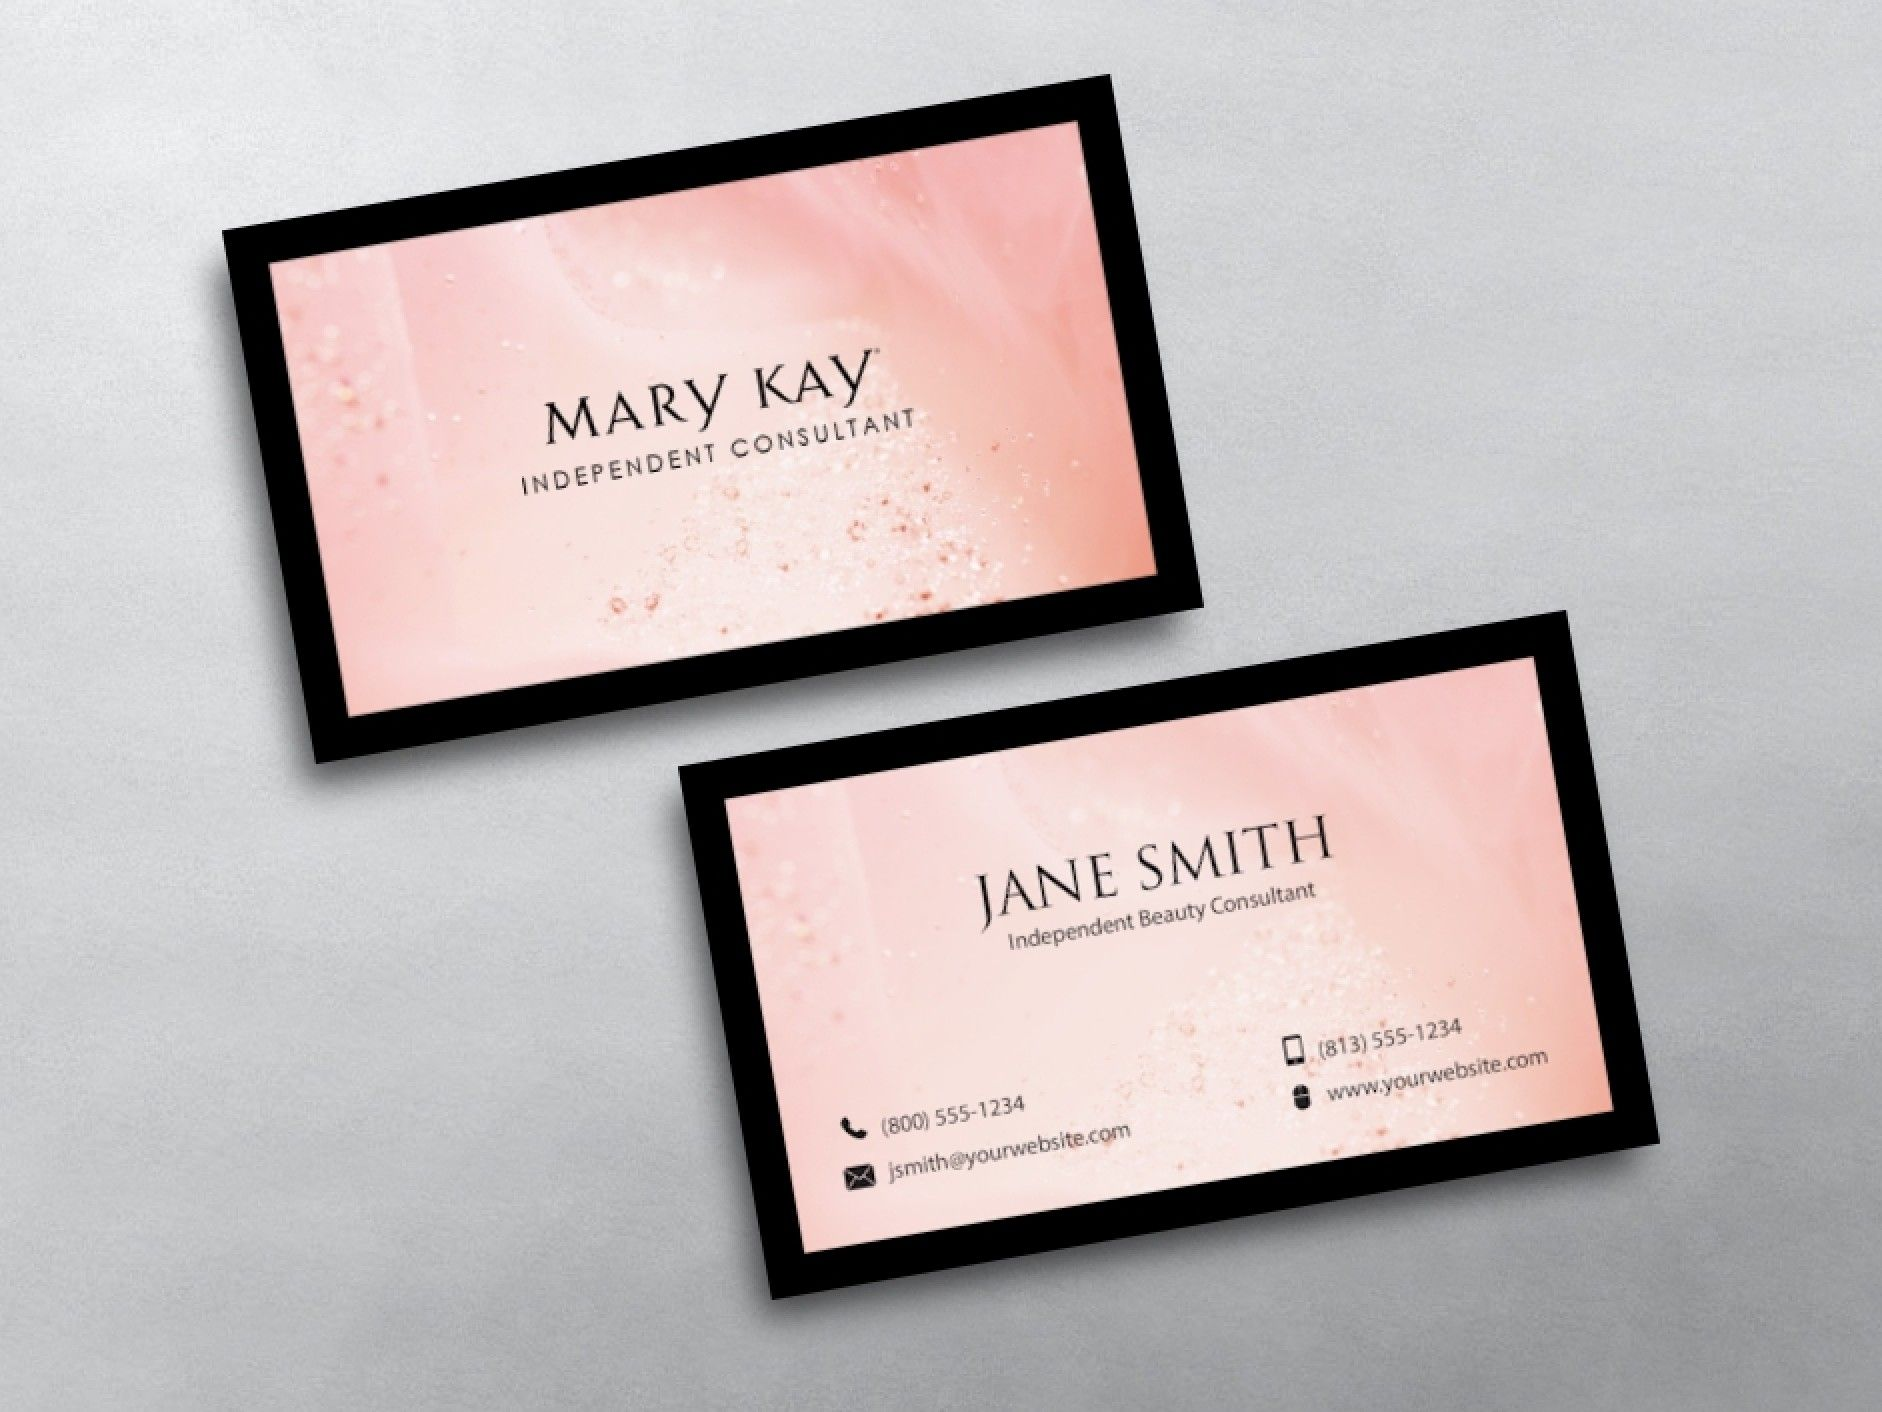 Mary Kay Business Cards | Beauty consultant and Mary kay